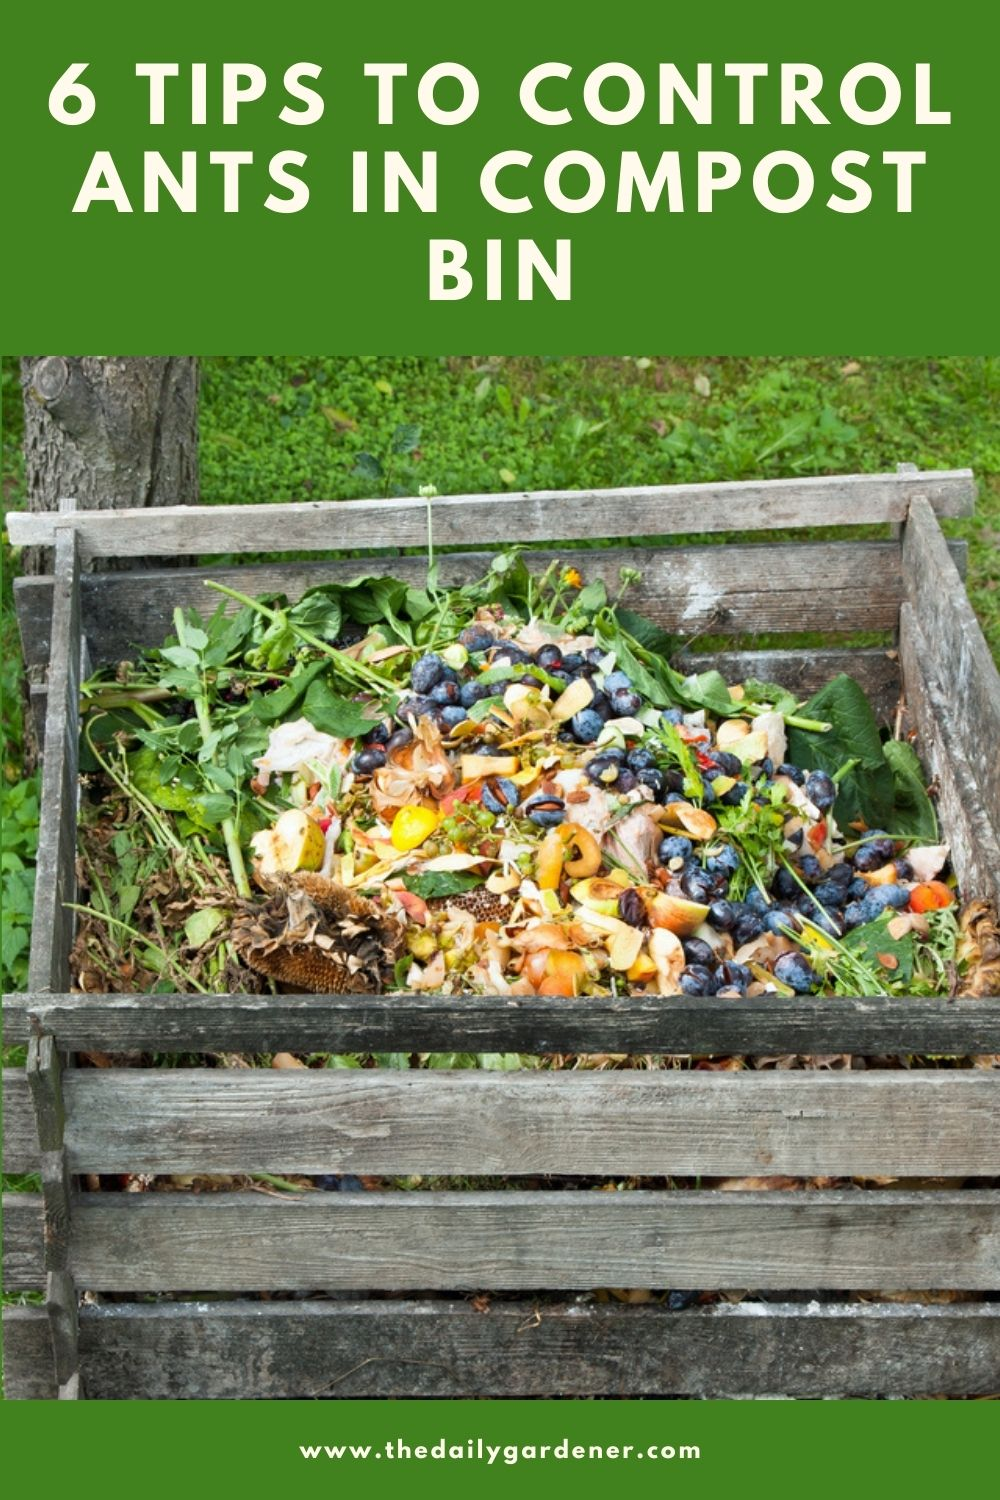 6 Tips to Control Ants in Compost Bin 2